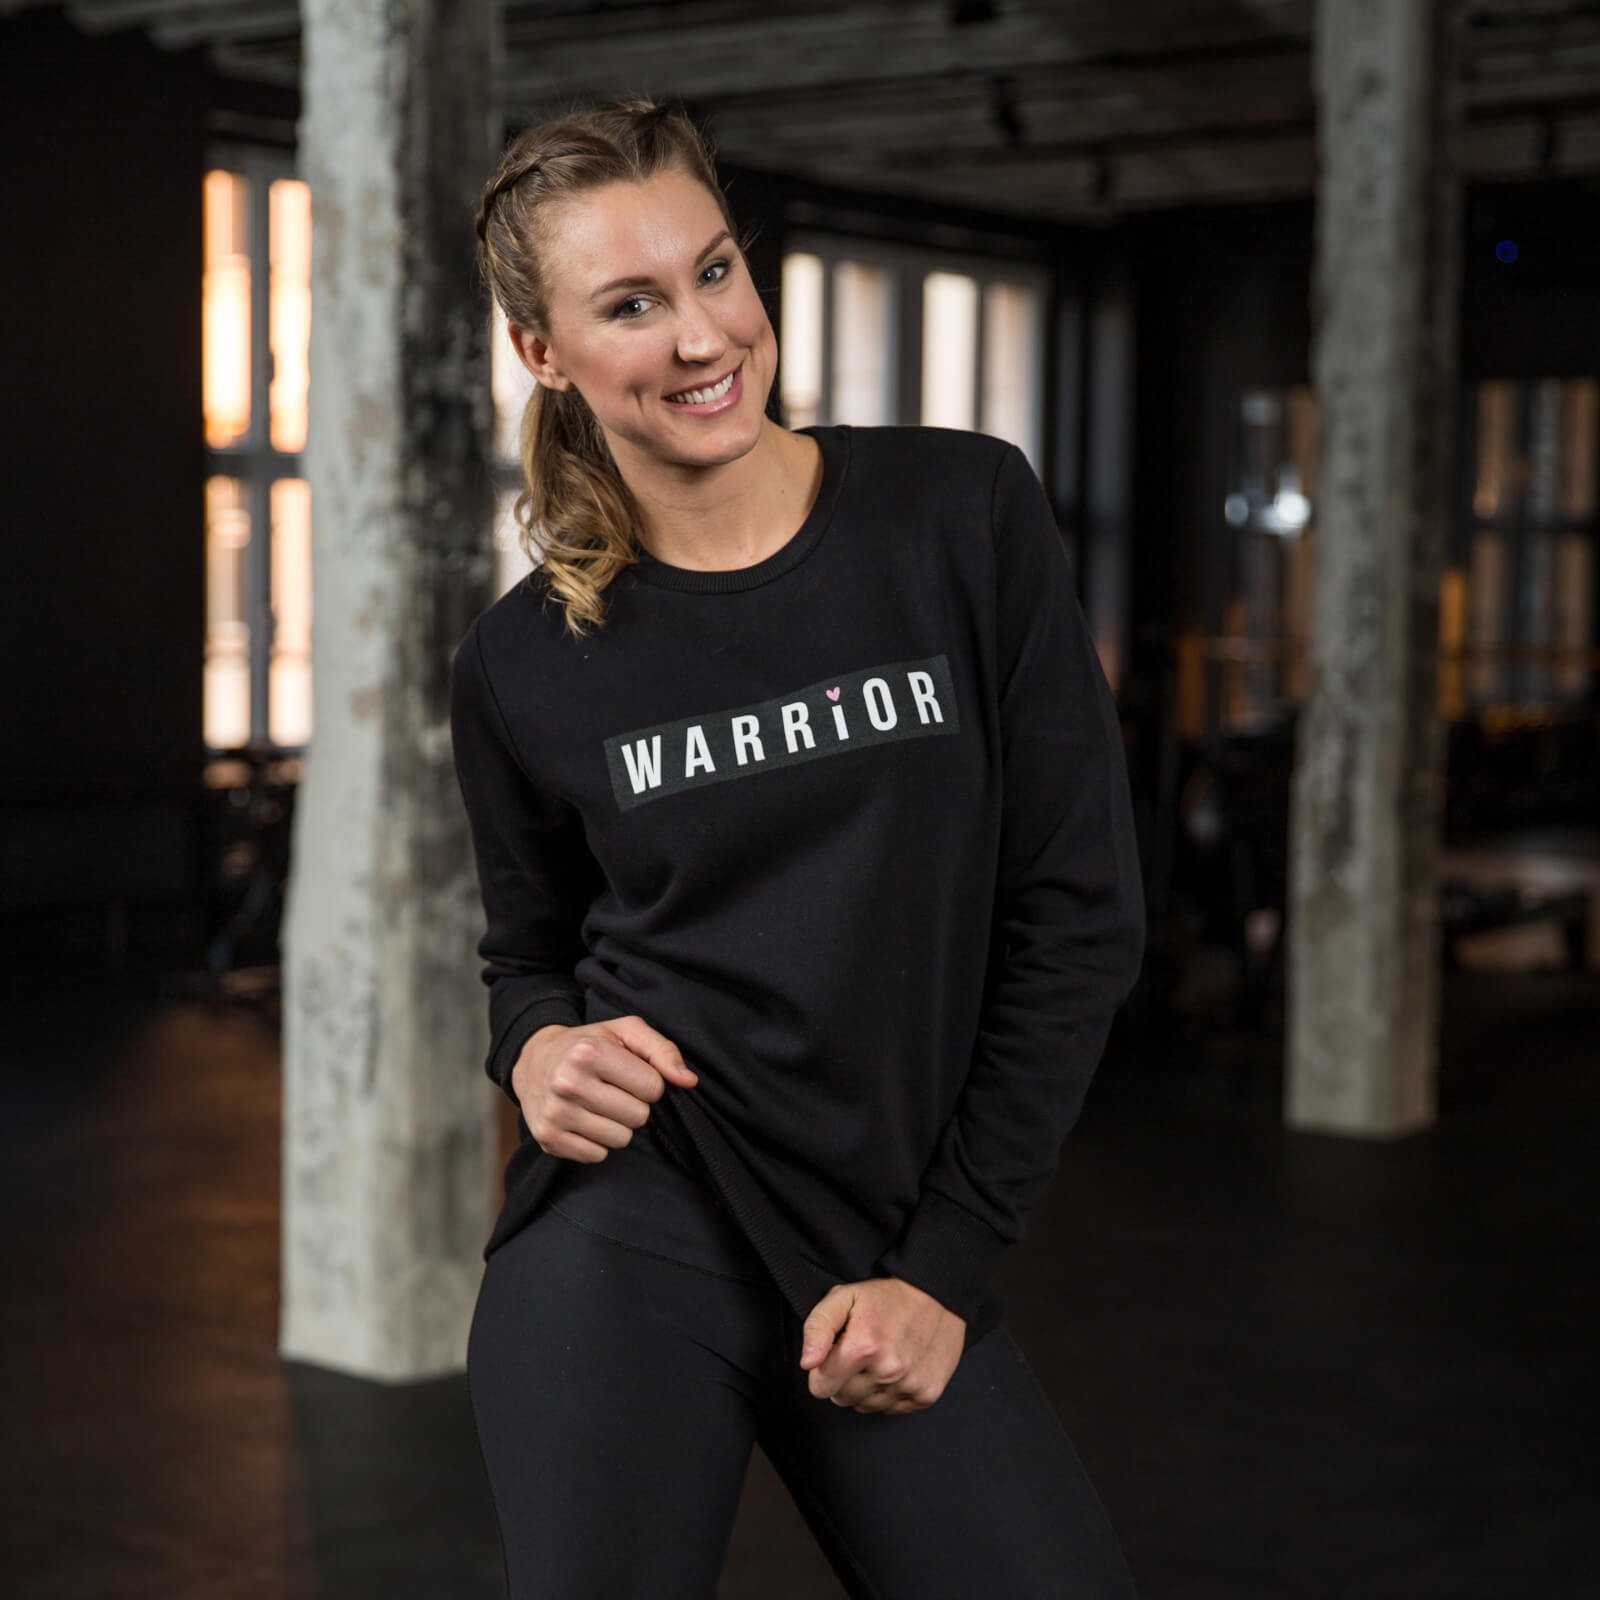 Healthy Madame Warrior Sweatshirt - Black - S